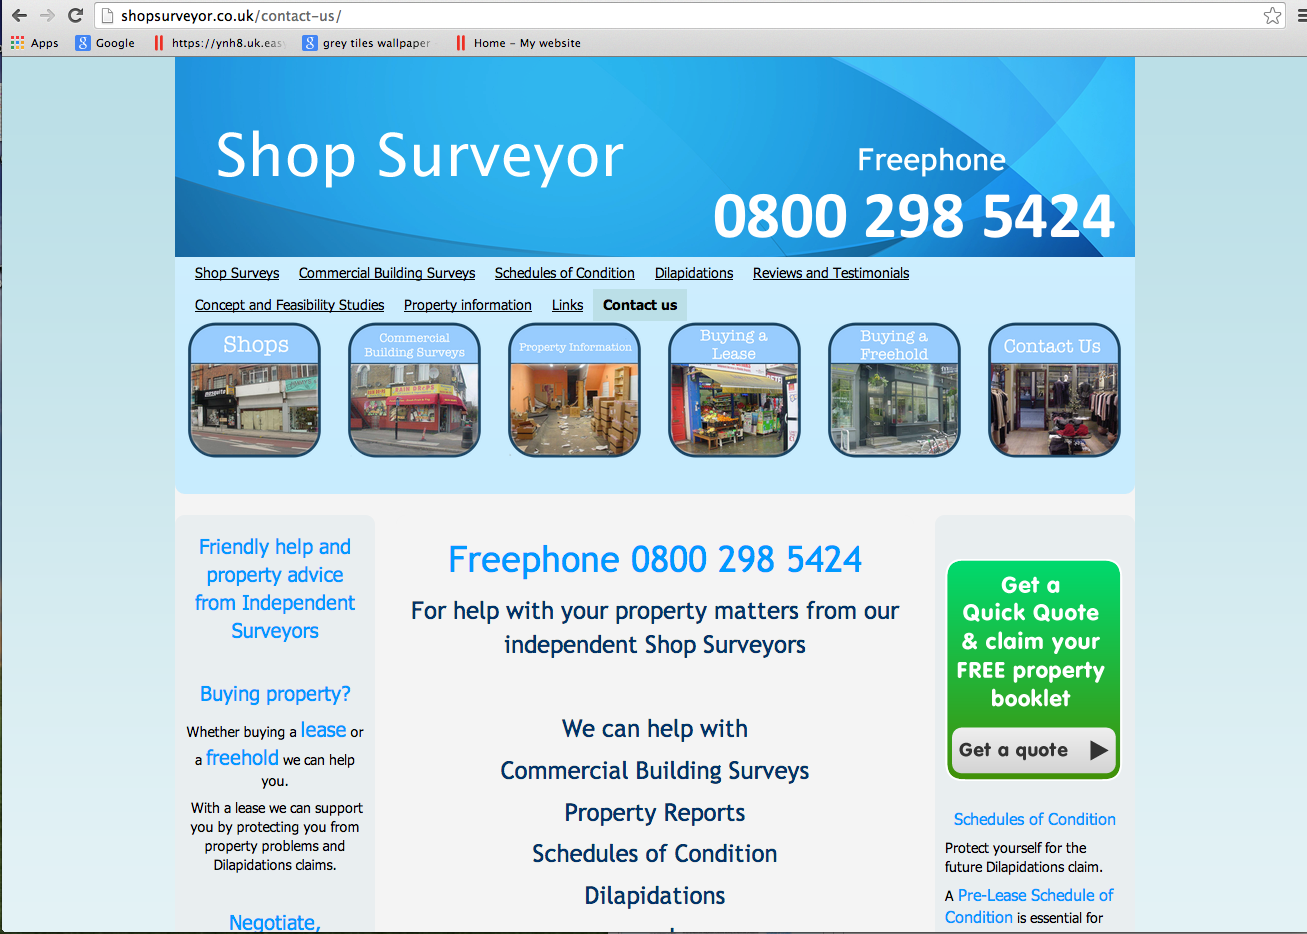 Shopsurveyor.co.uk - Contact Us